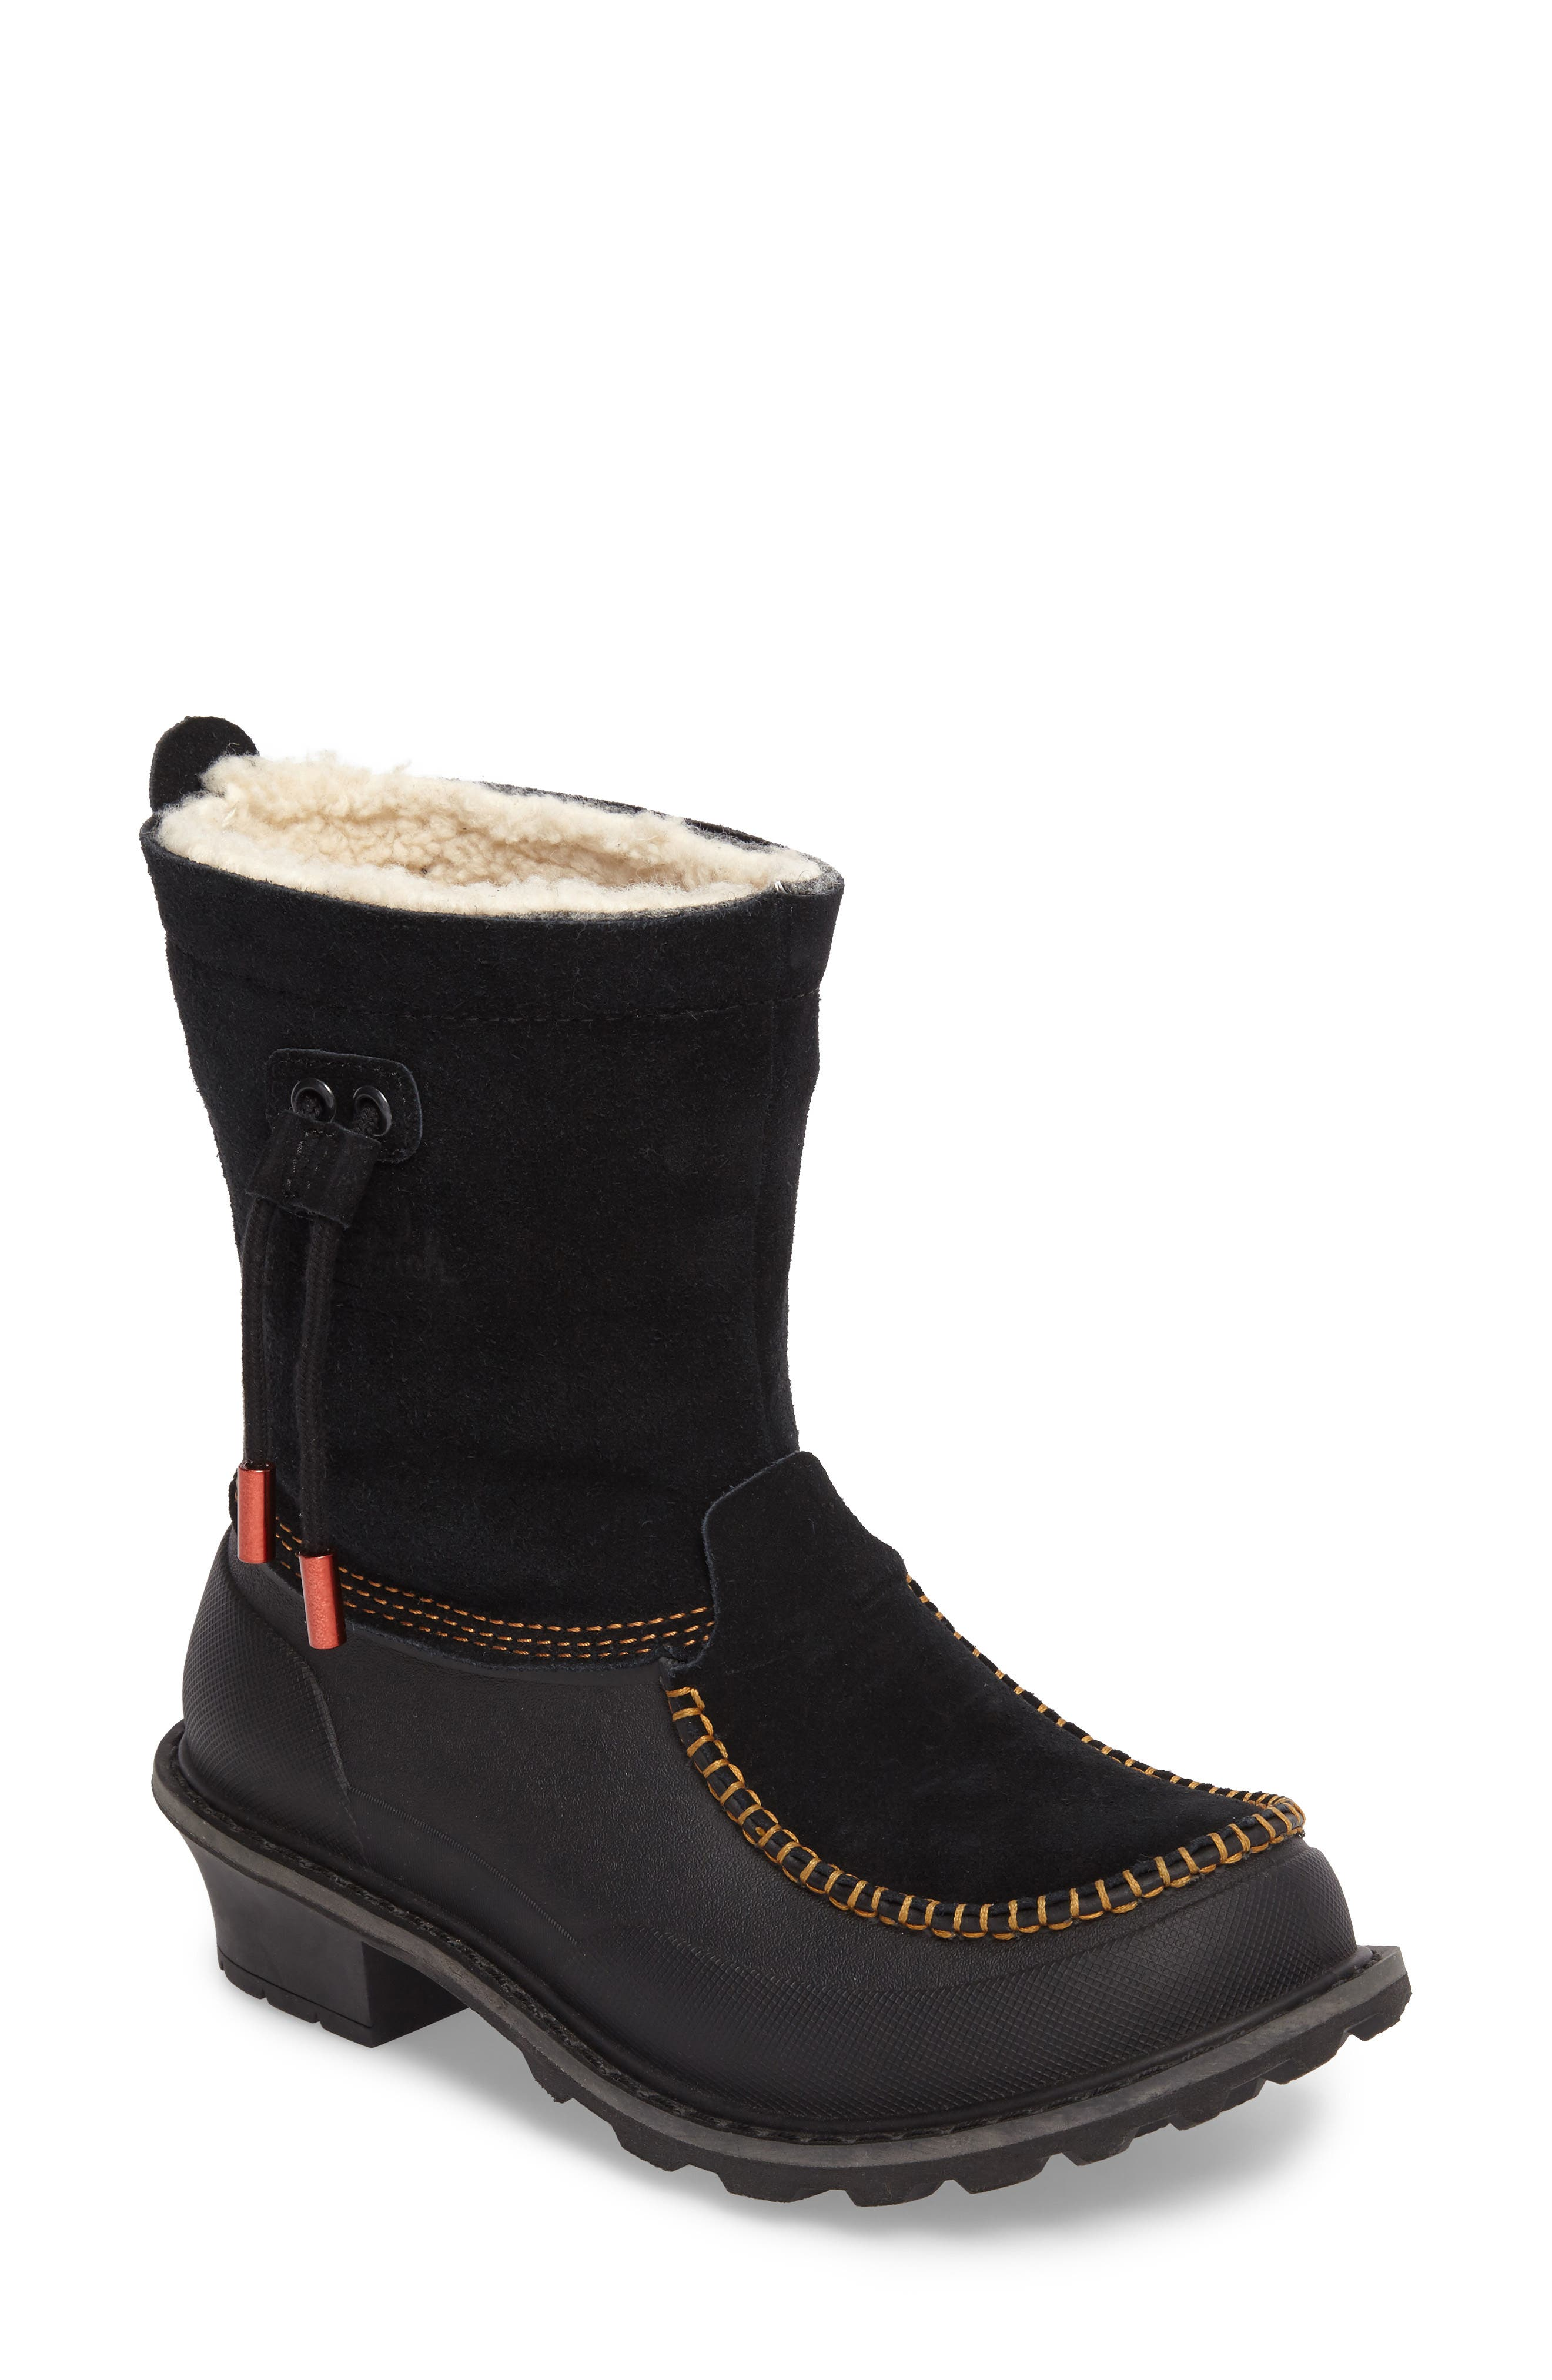 Fully Wooly Waterproof Winter Boot,                             Main thumbnail 1, color,                             Black Leather